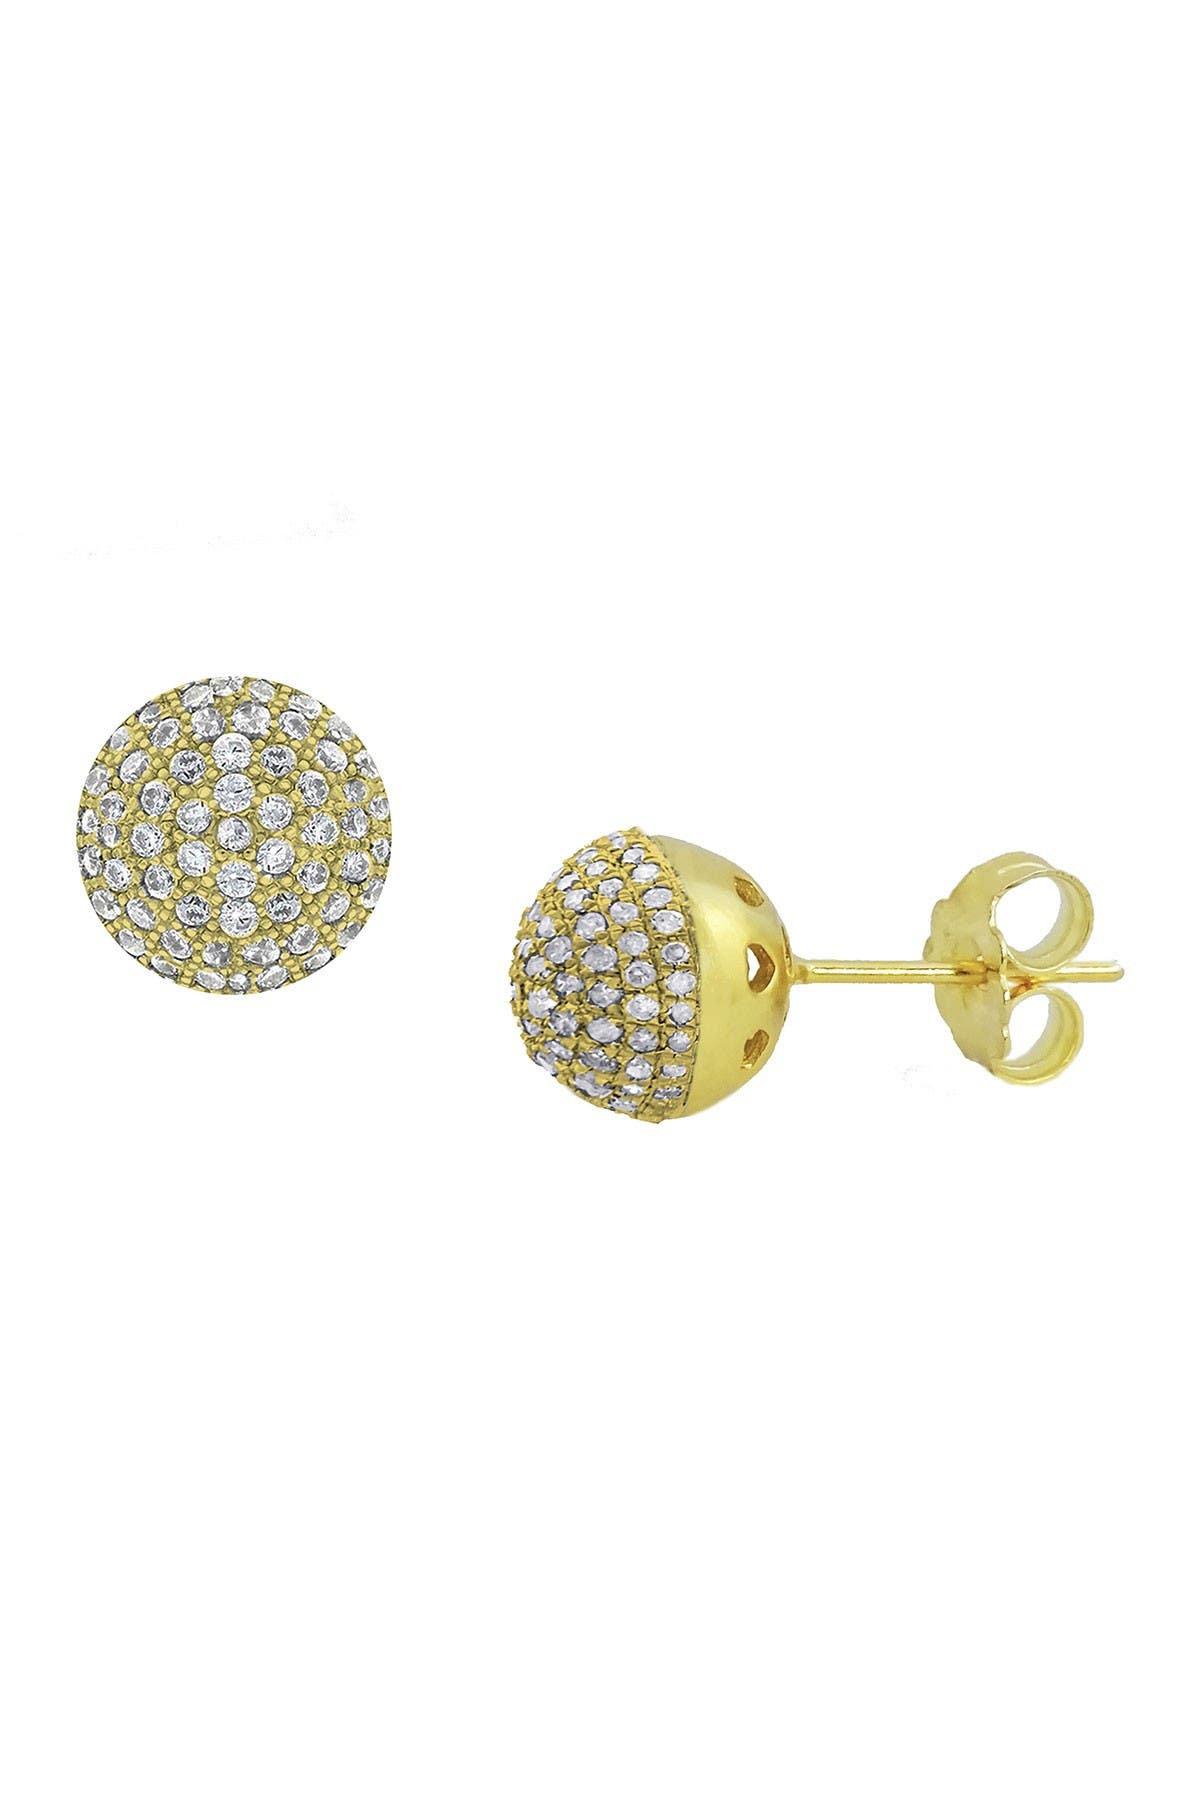 Image of Savvy Cie 18K Gold Vermeil Micro Pave Cubic Zirconia Ball Stud Earrings